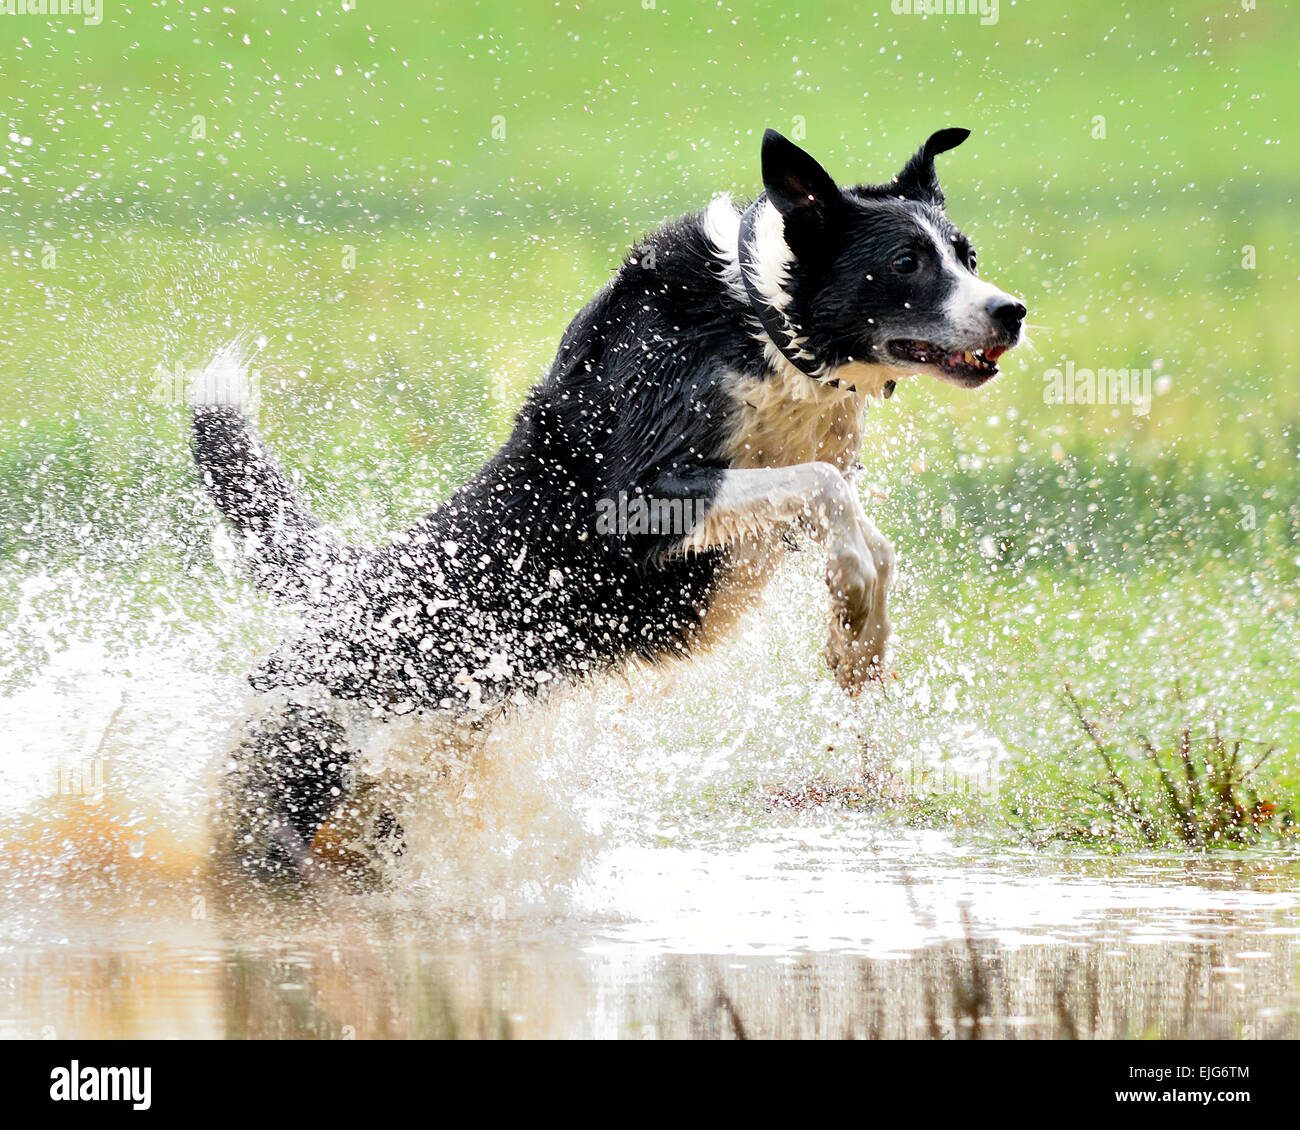 Border Collie Dog running for a stick. Stock Photo